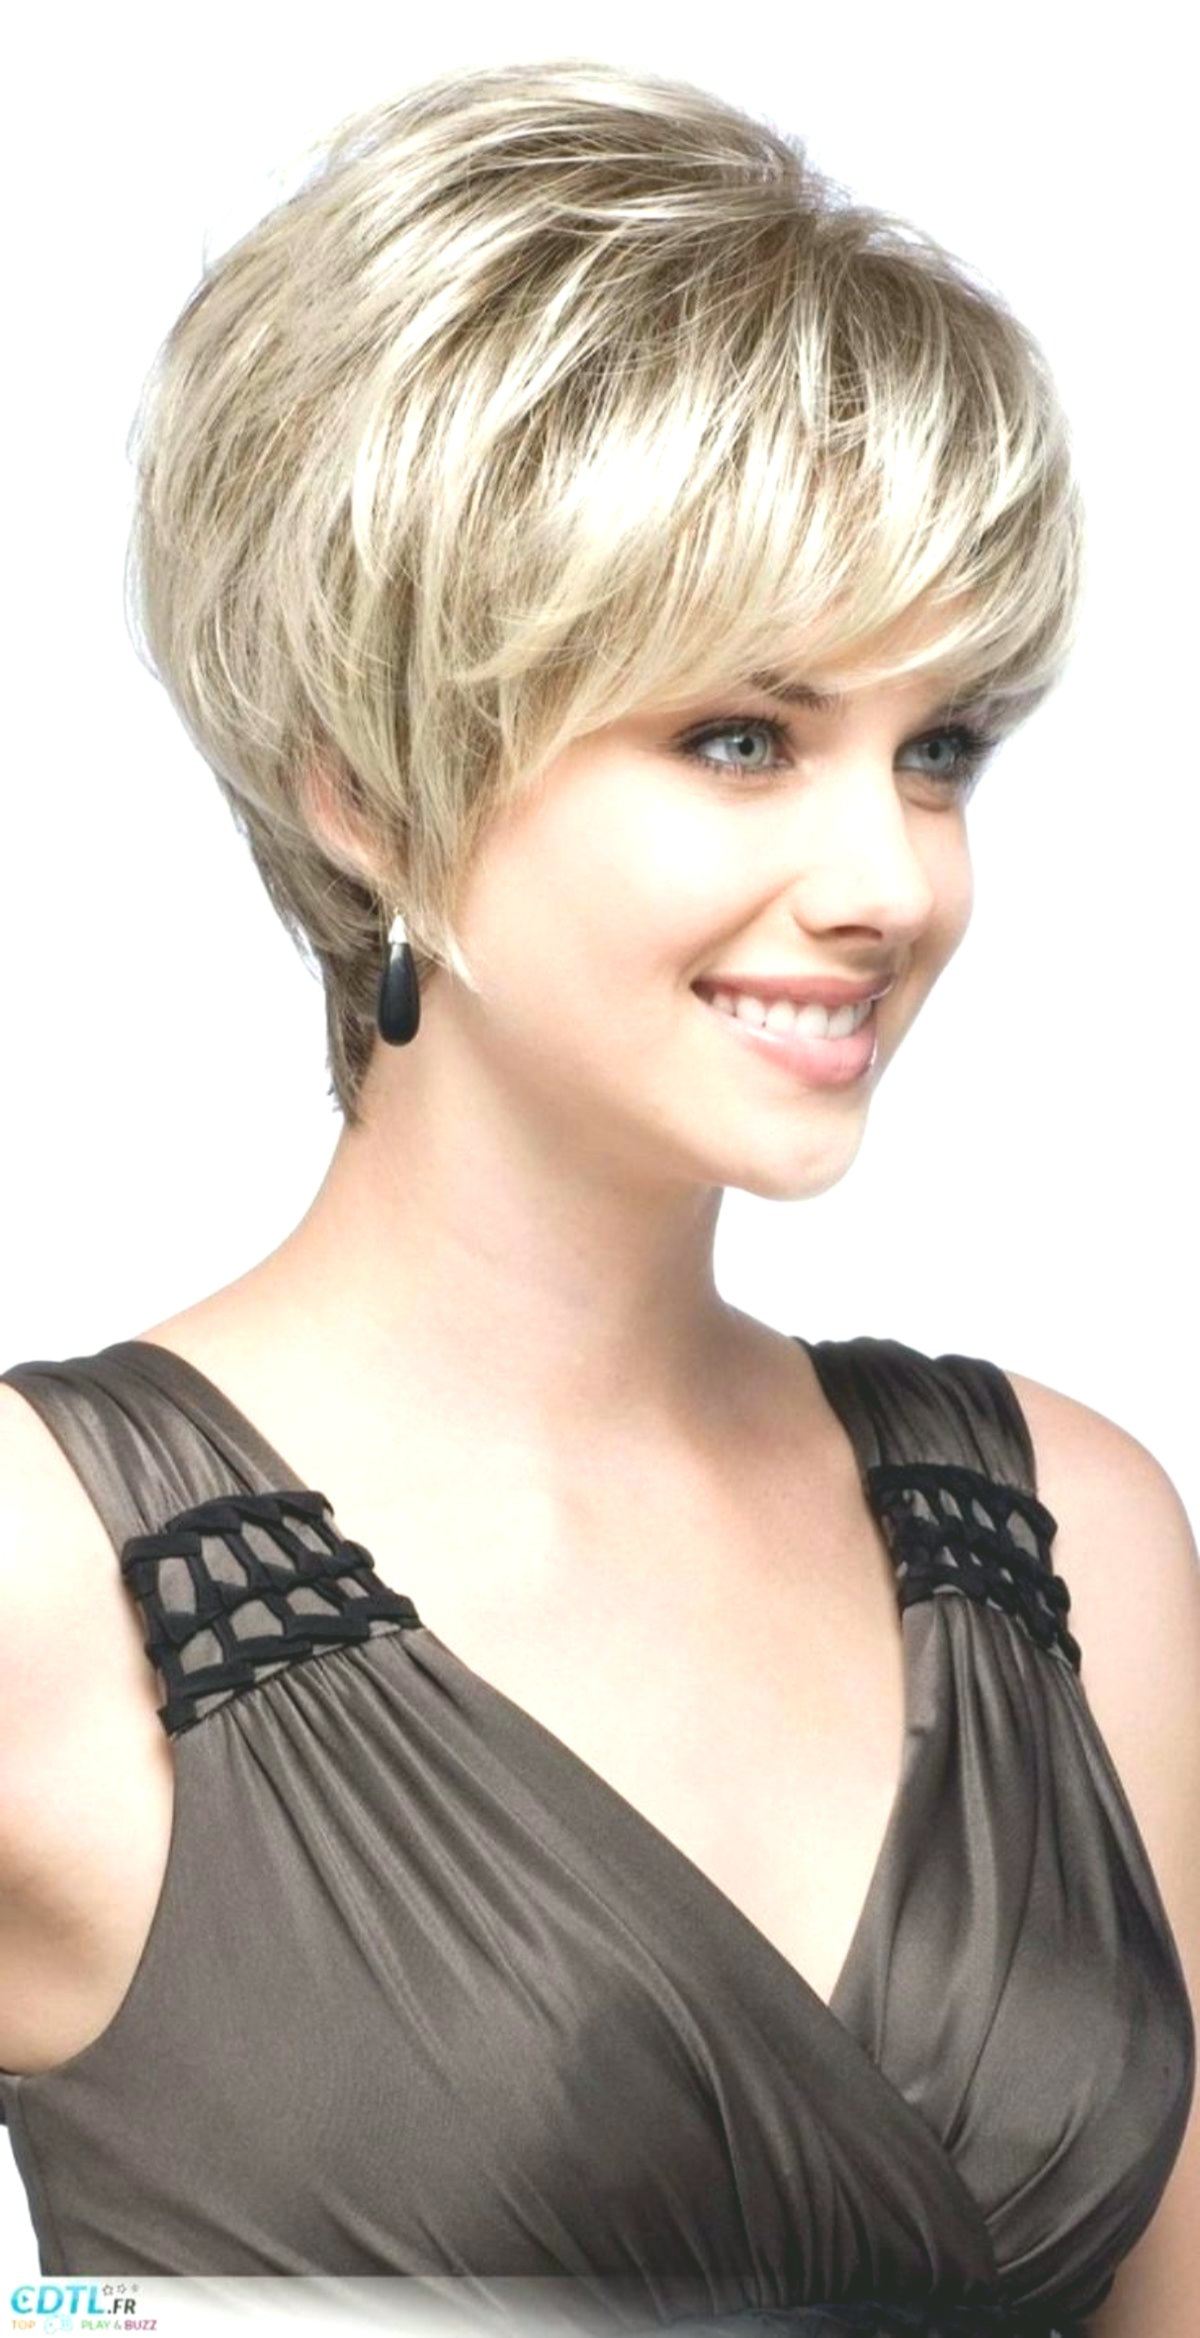 modern medium-length hair hairstyles idea-modern Medium-length hair hairstyles architecture